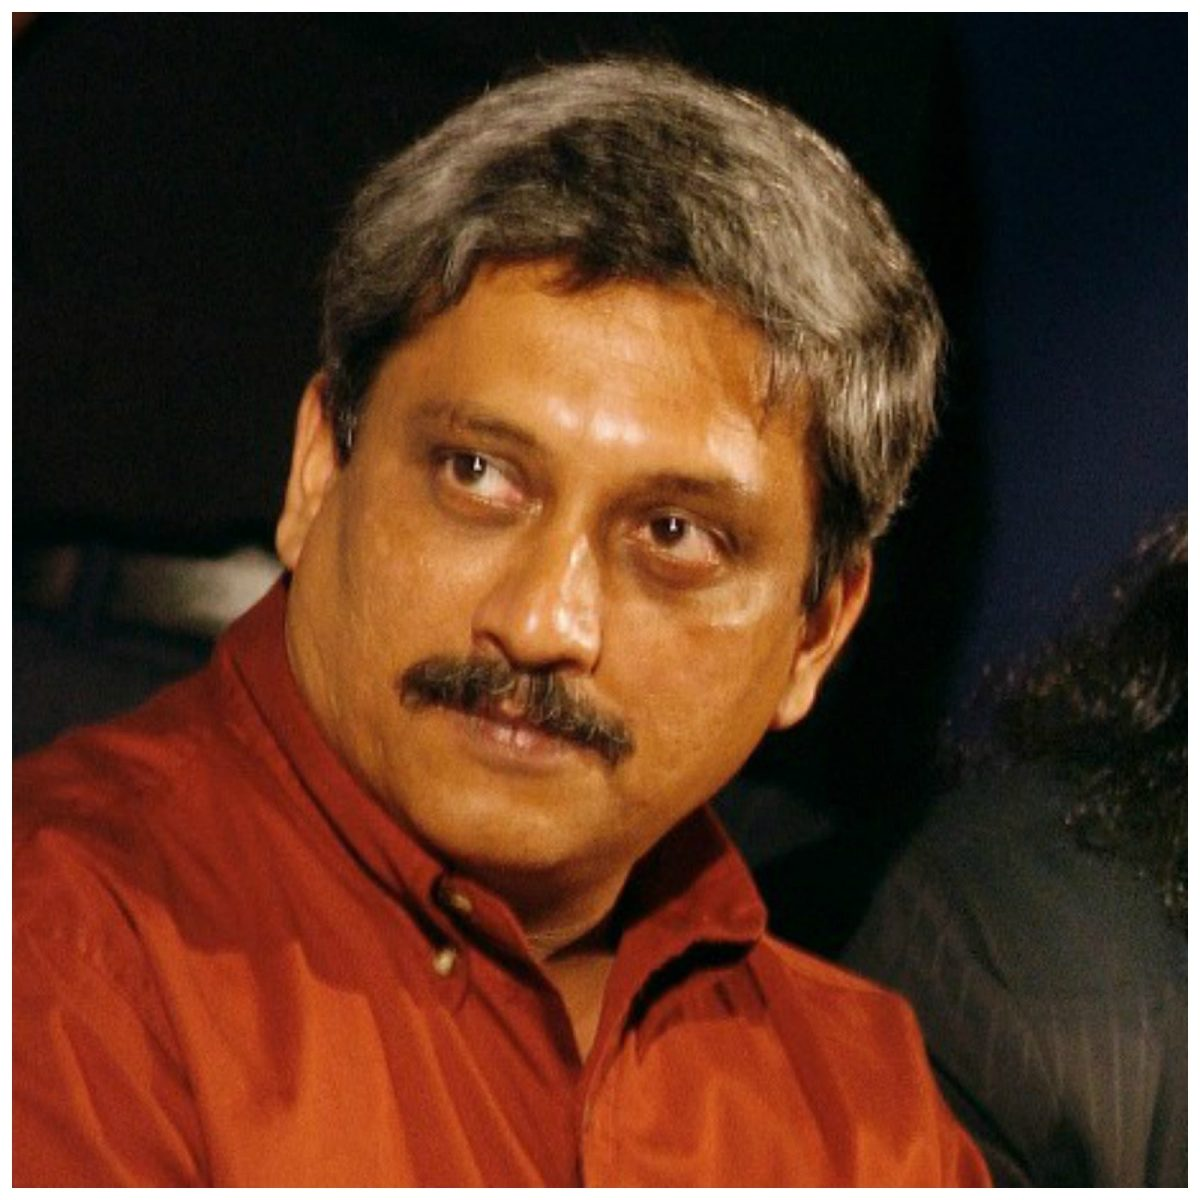 India's former defense minister and BJP leader Manohar Parrikar who is set to be sworn in as Goa's chief minister on Tuesday . Photo/AFP/Files